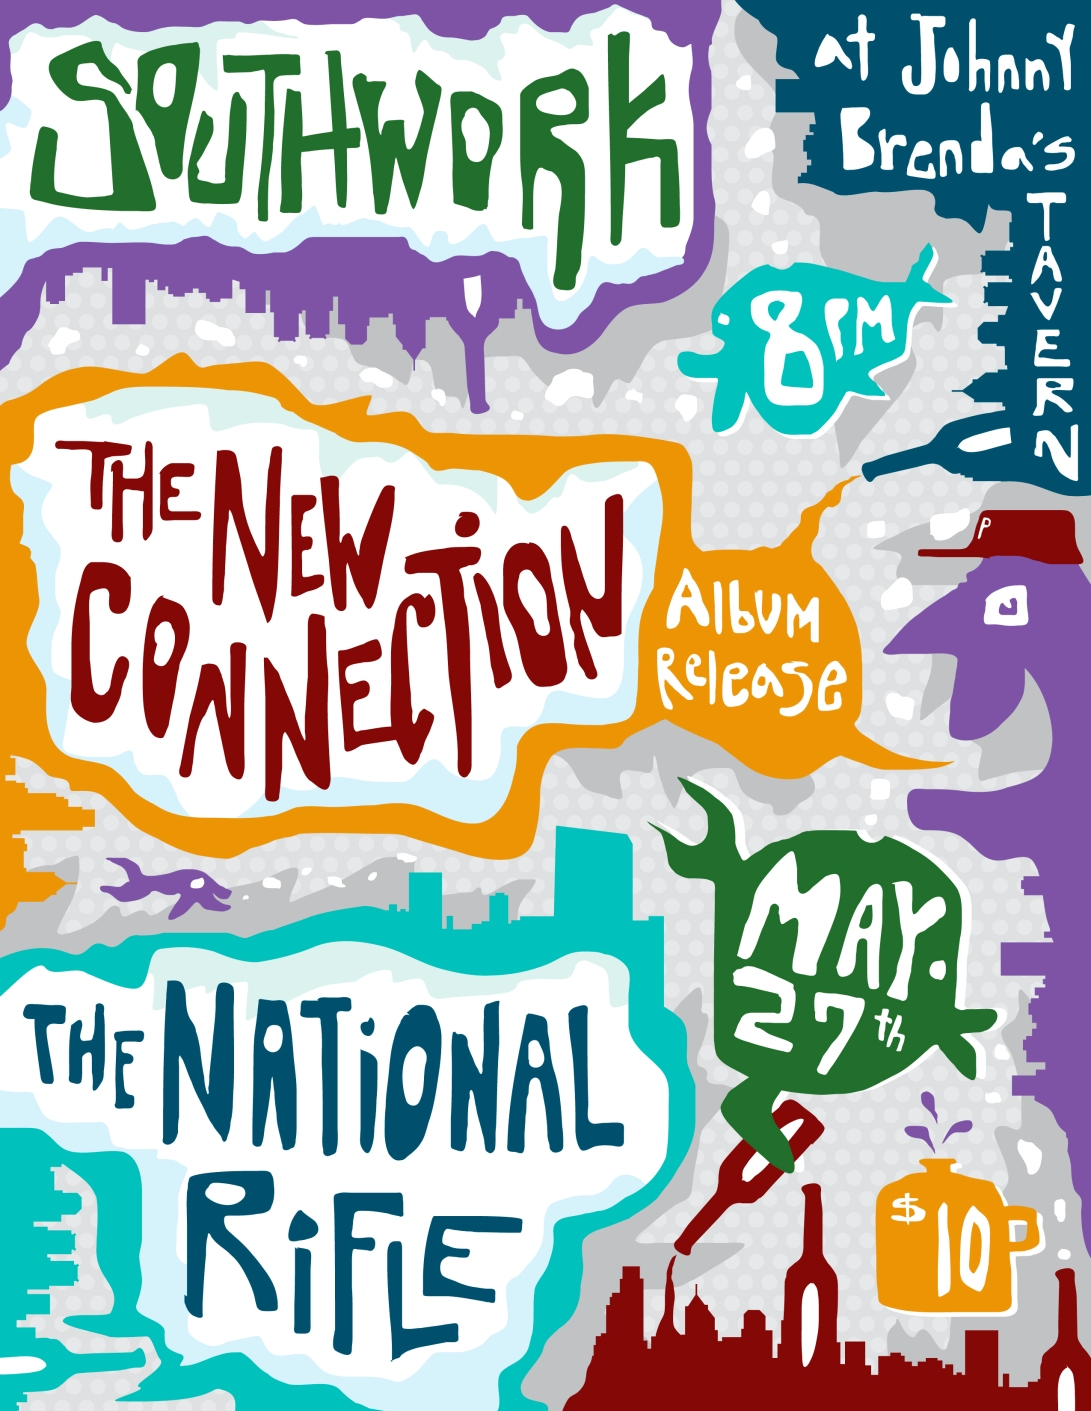 The New Connection - show flier